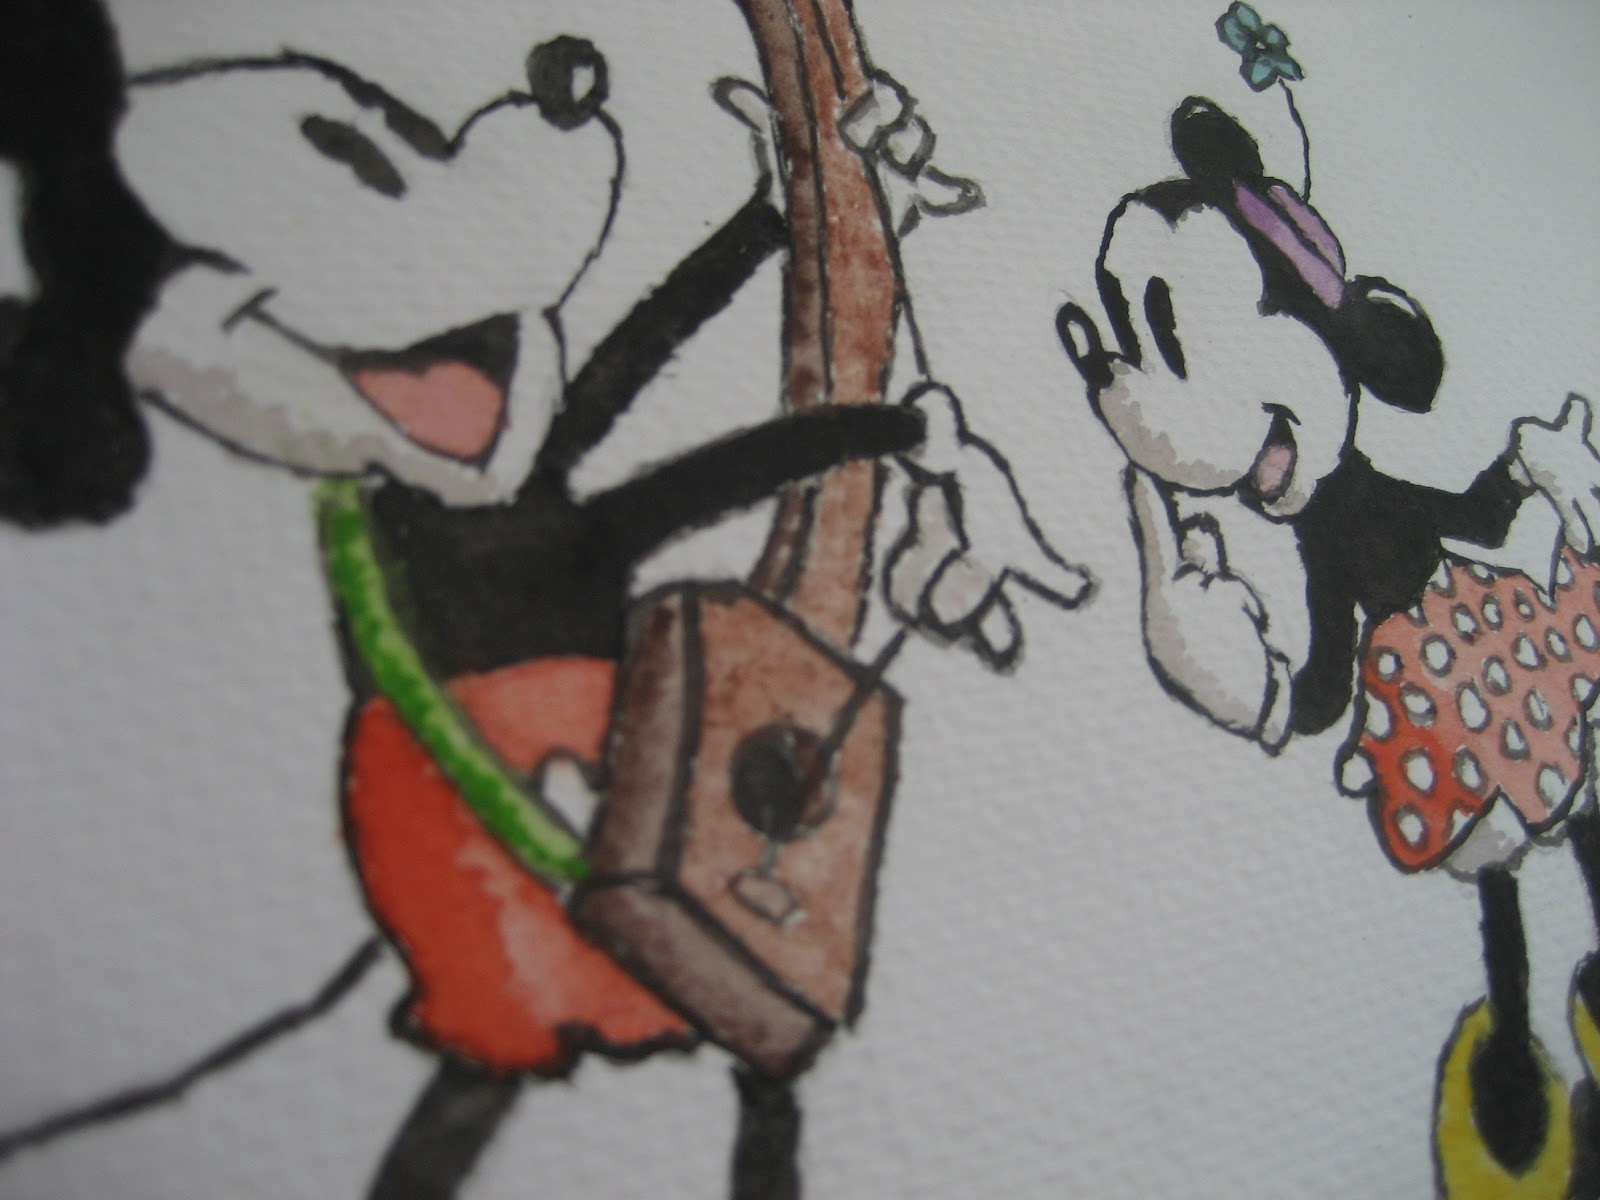 Mickey Y Minnie Los Dibujos De Jose Angel Barbado